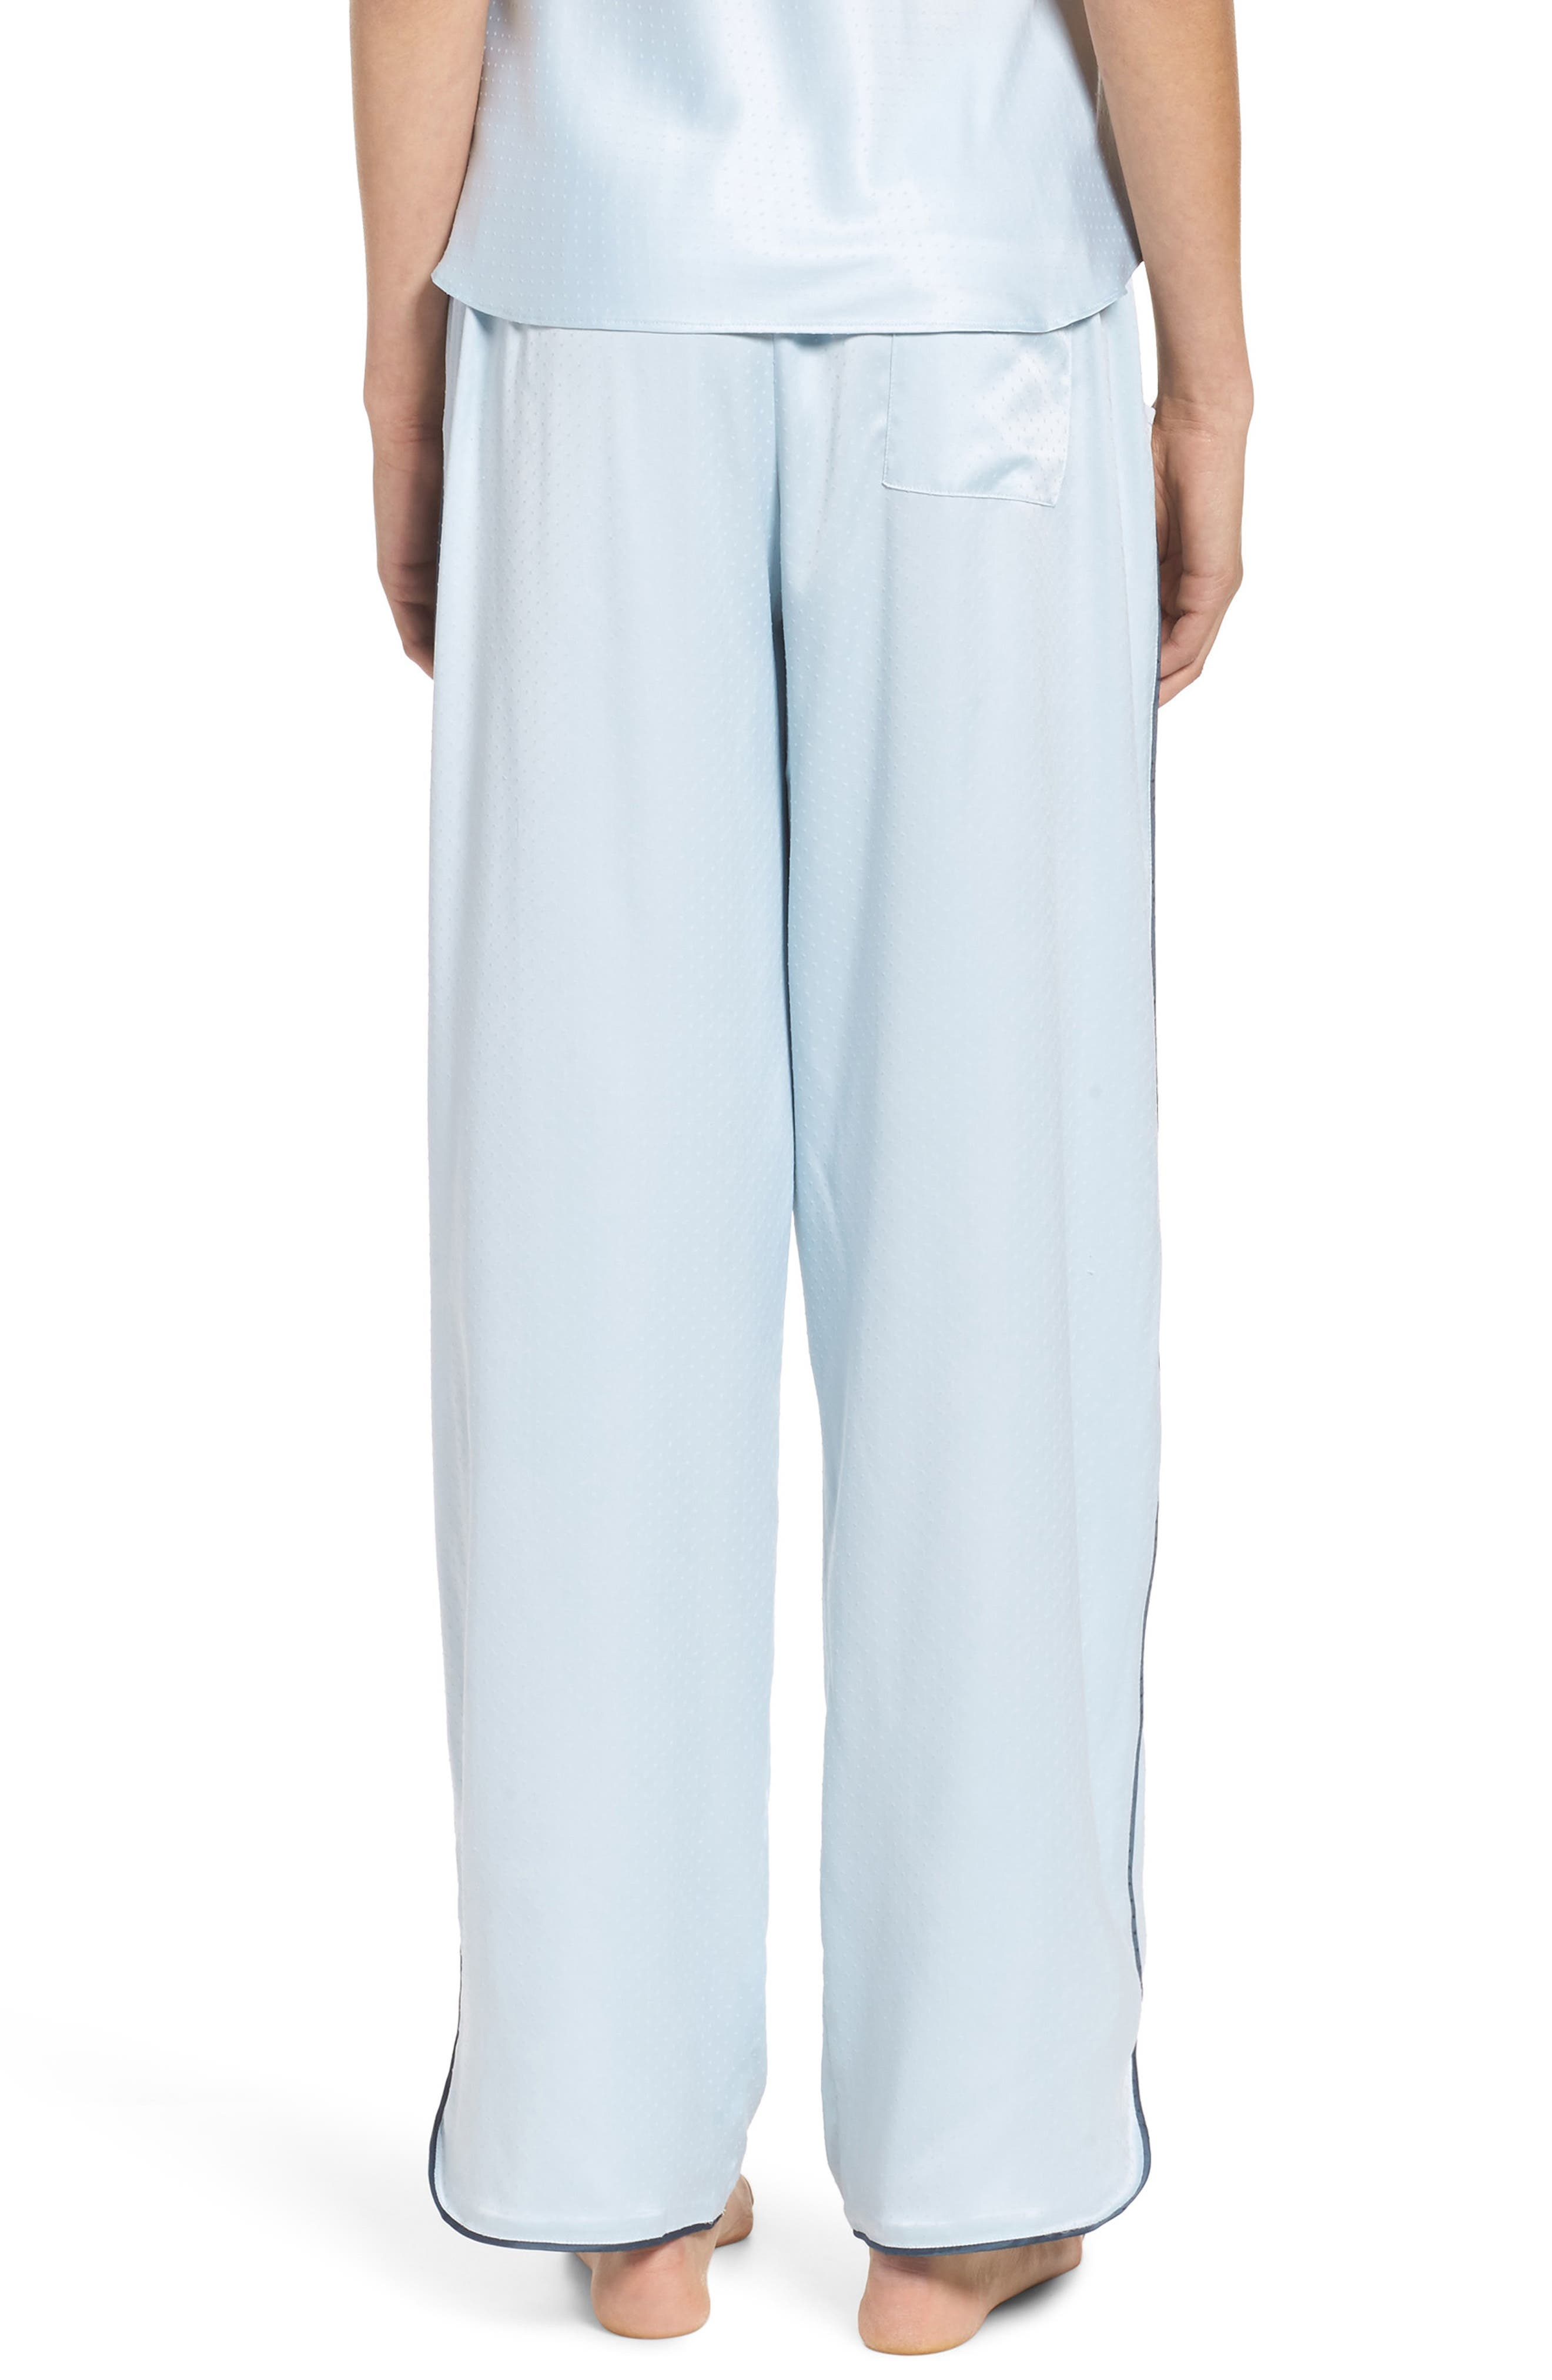 Chelsea27 Late Nights Satin Lounge Pants,                             Alternate thumbnail 2, color,                             Blue Drift